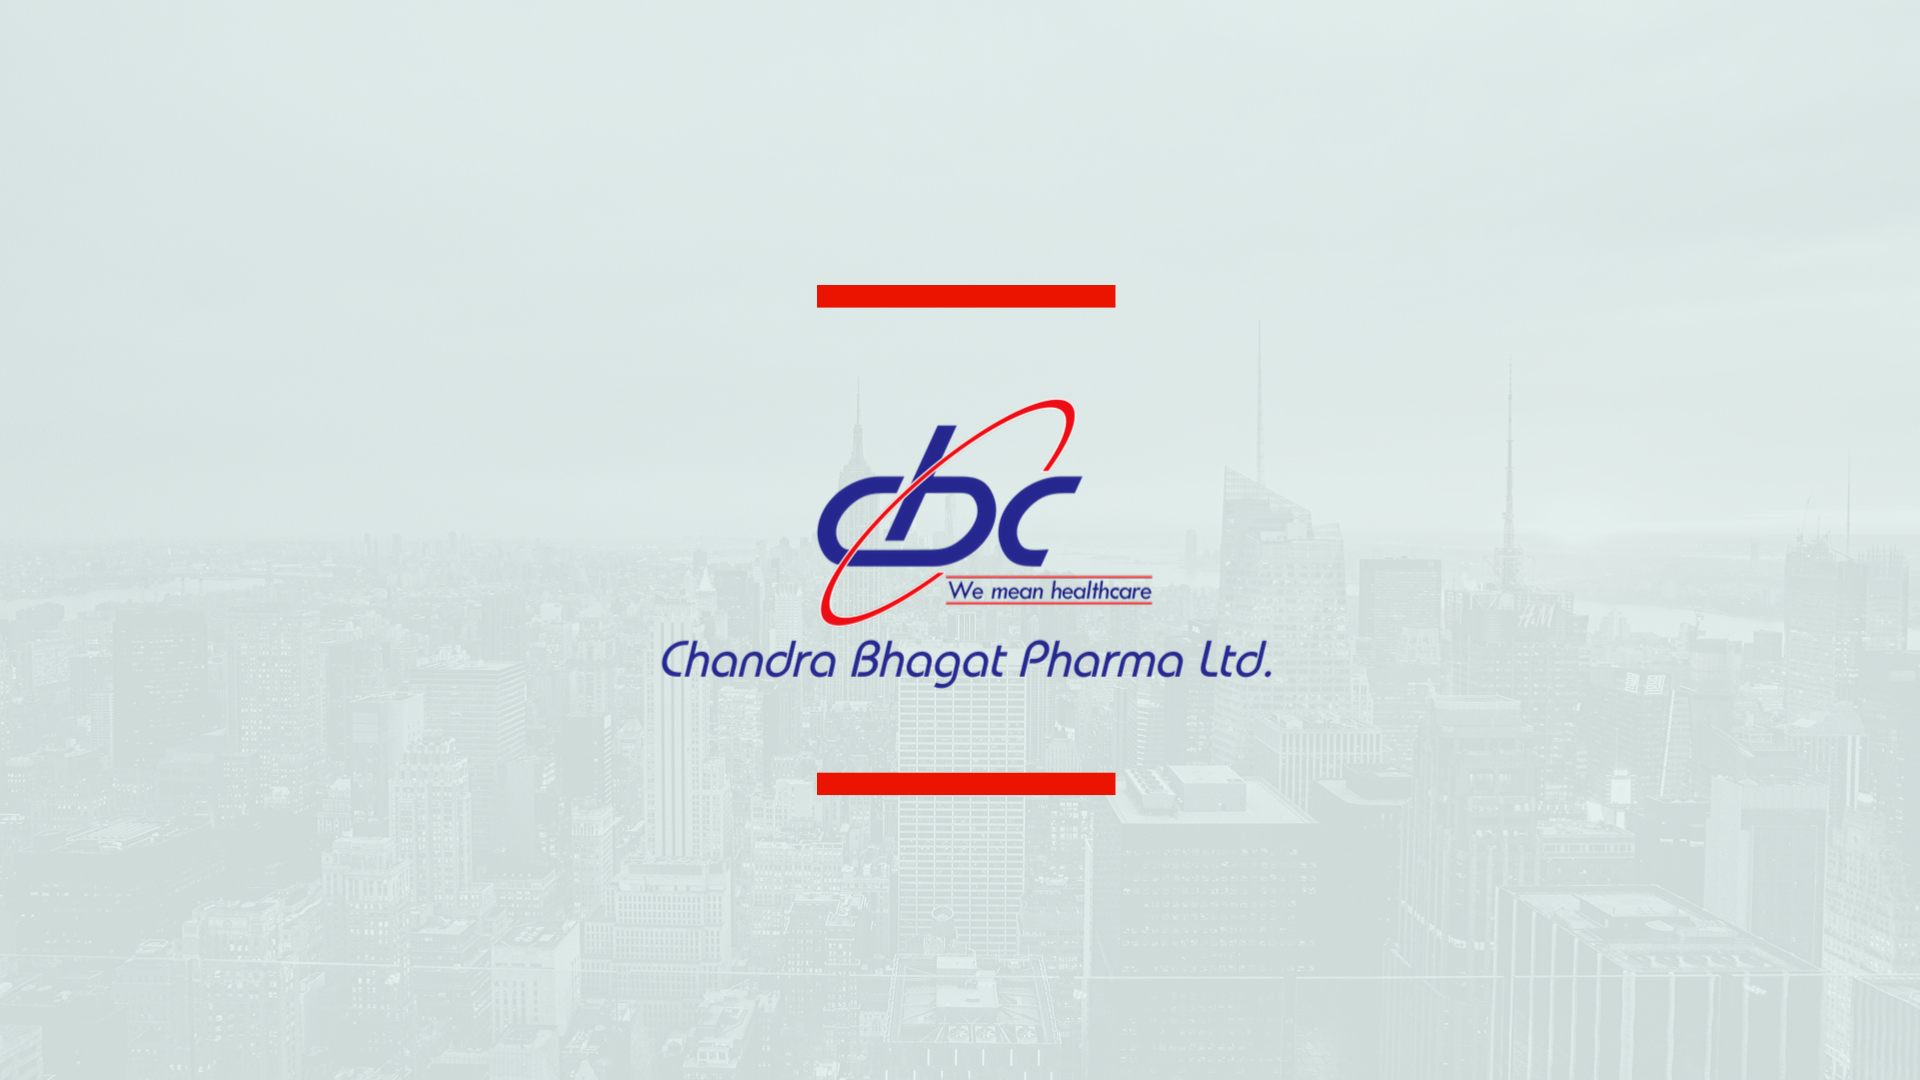 CBC Pharma Portal Cover Images (10)